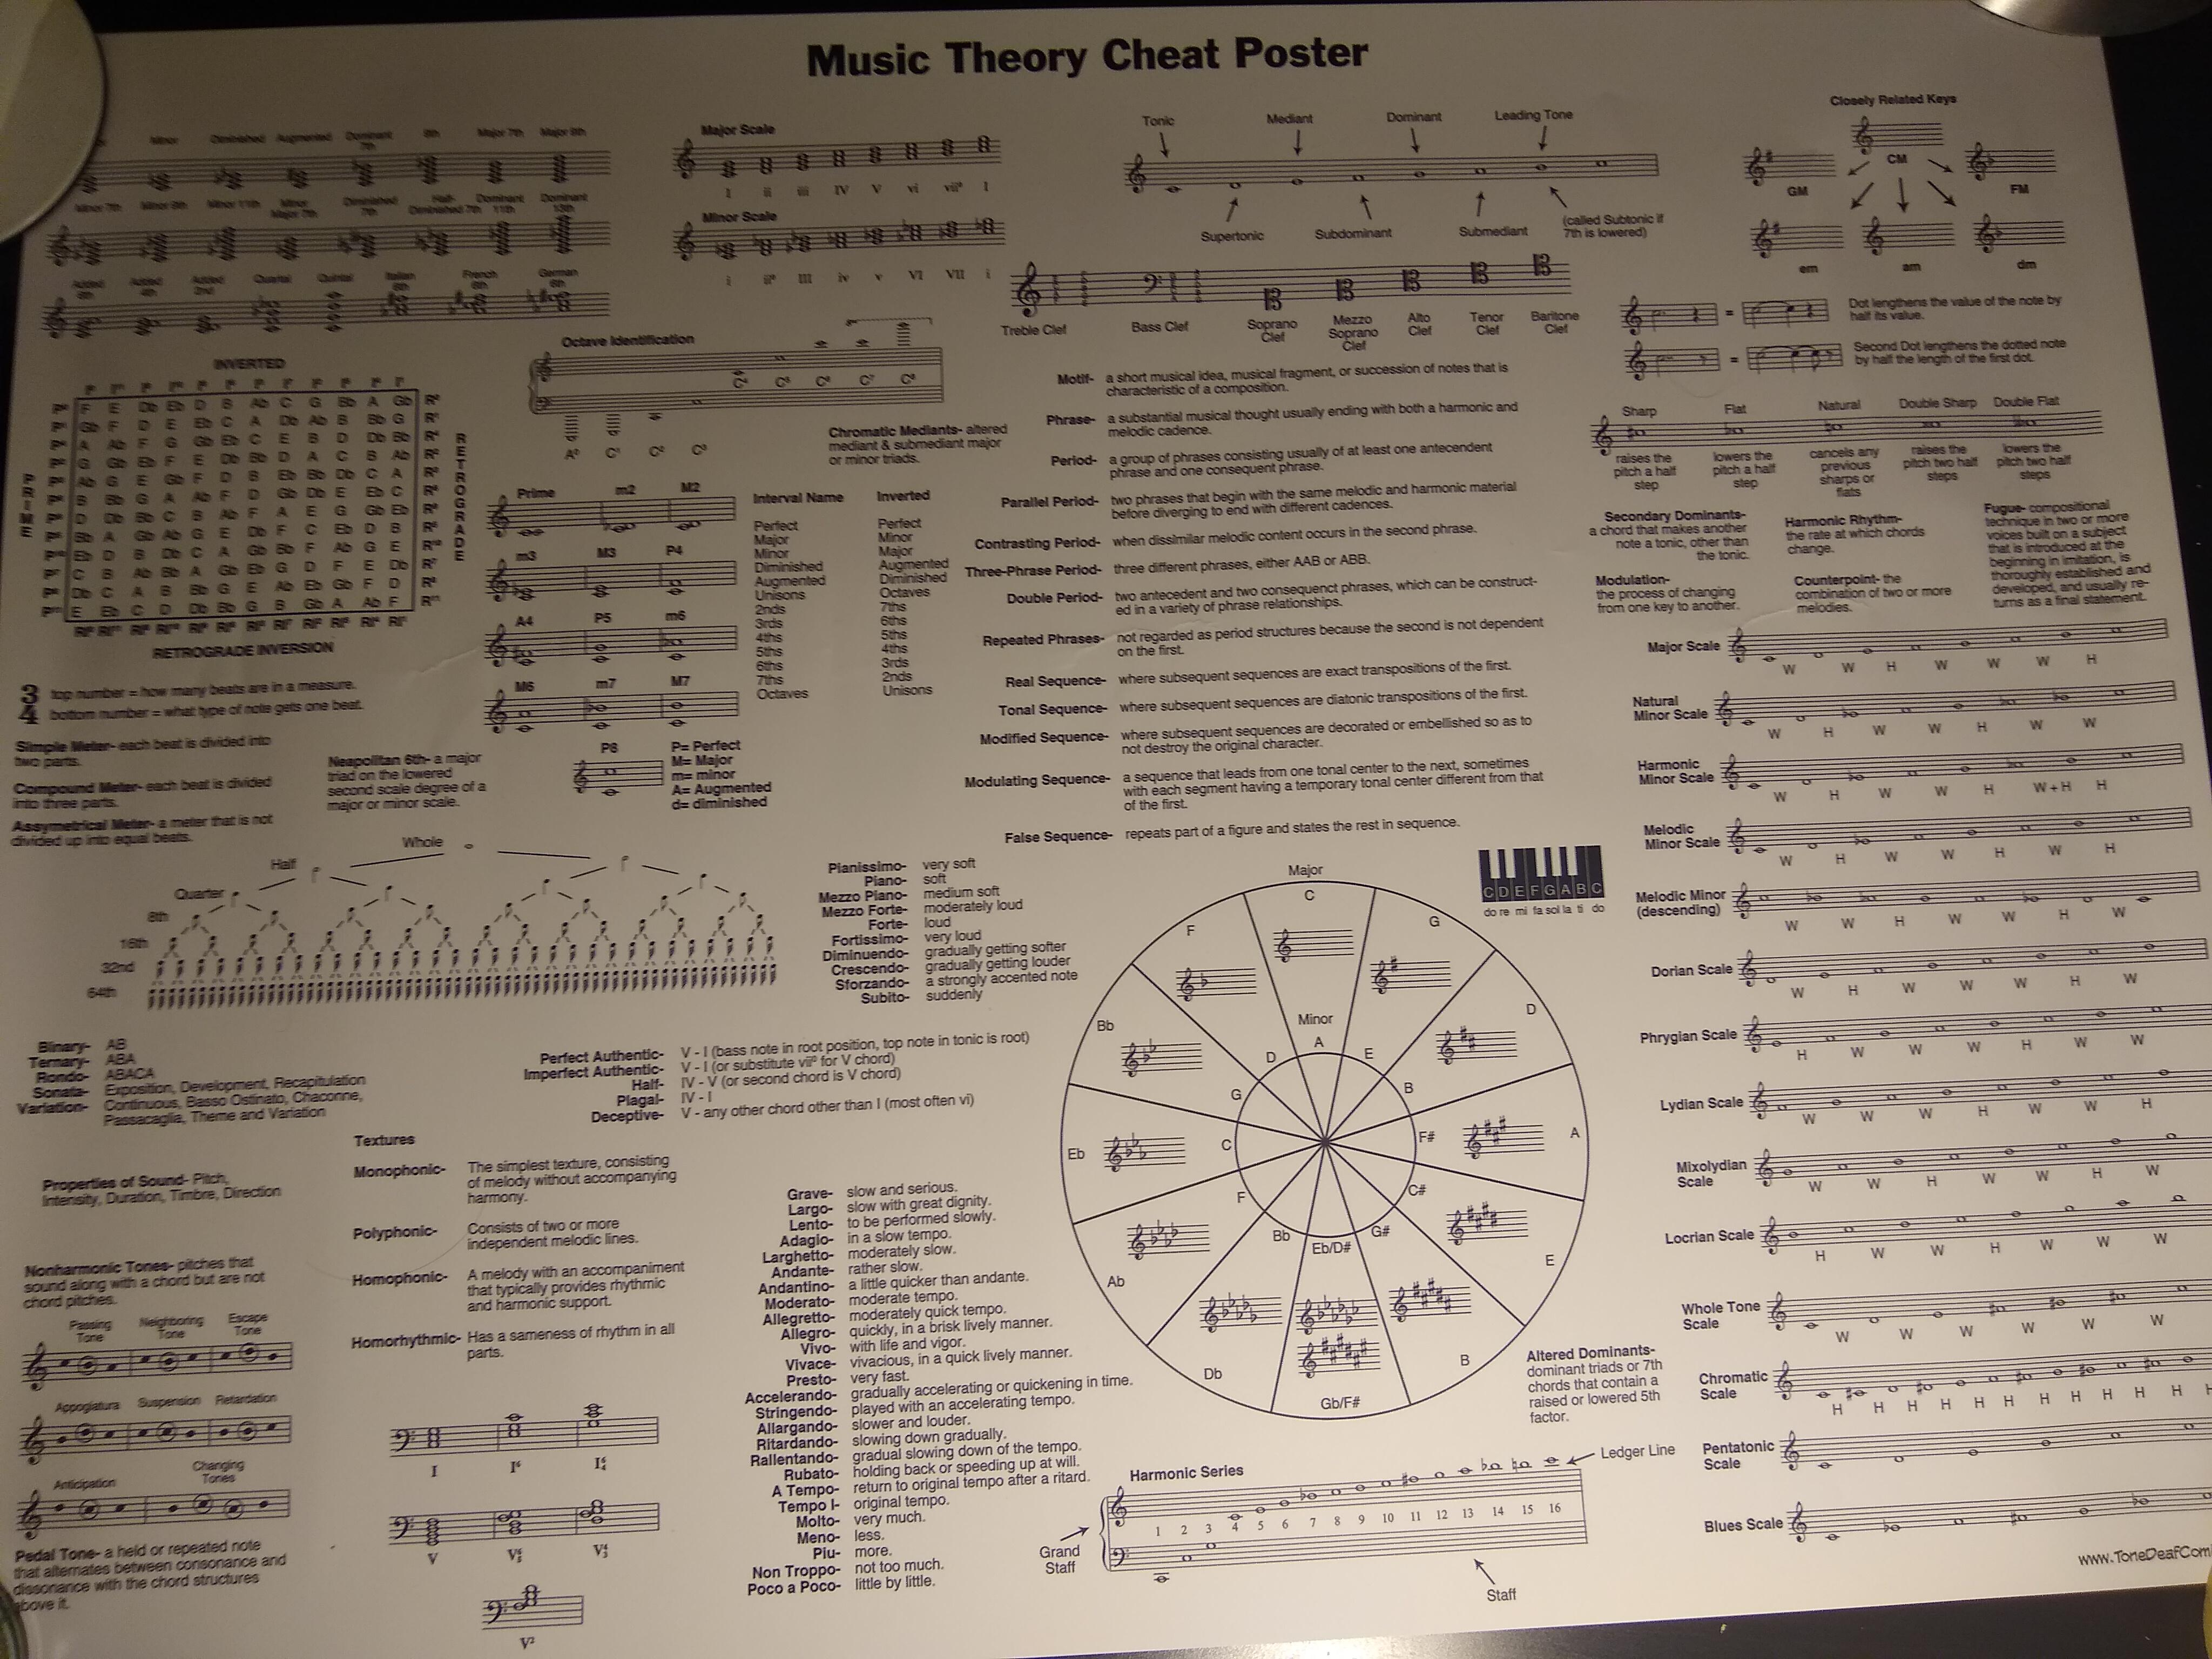 music theory cheat poster coolguides